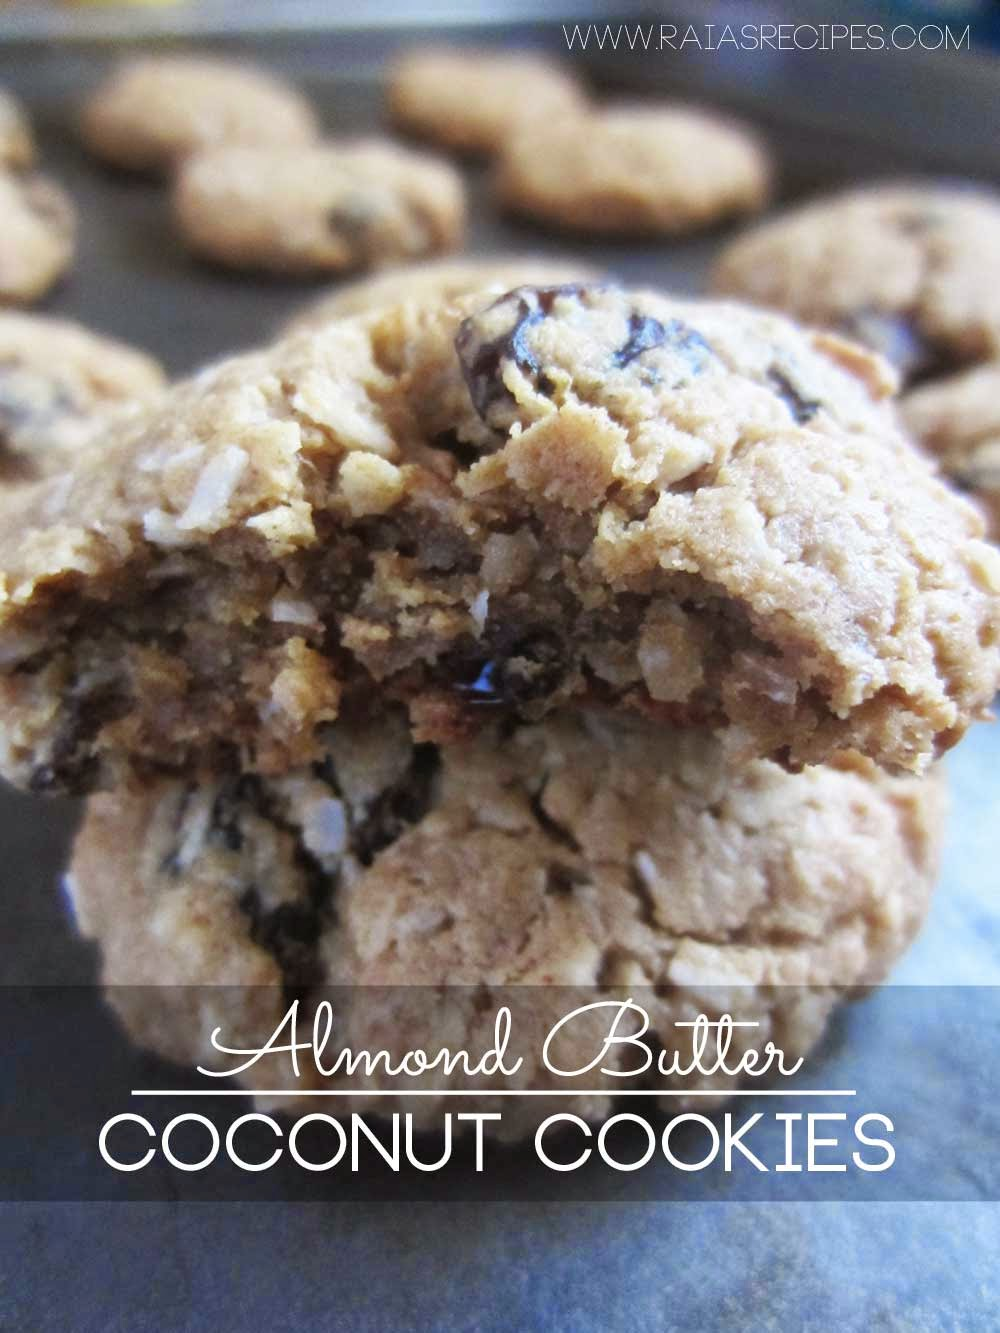 One of my family's favorite cookie recipes: Almond Butter Coconut Cookies | grain-free, sugar-free | www.RaiasRecipes.com